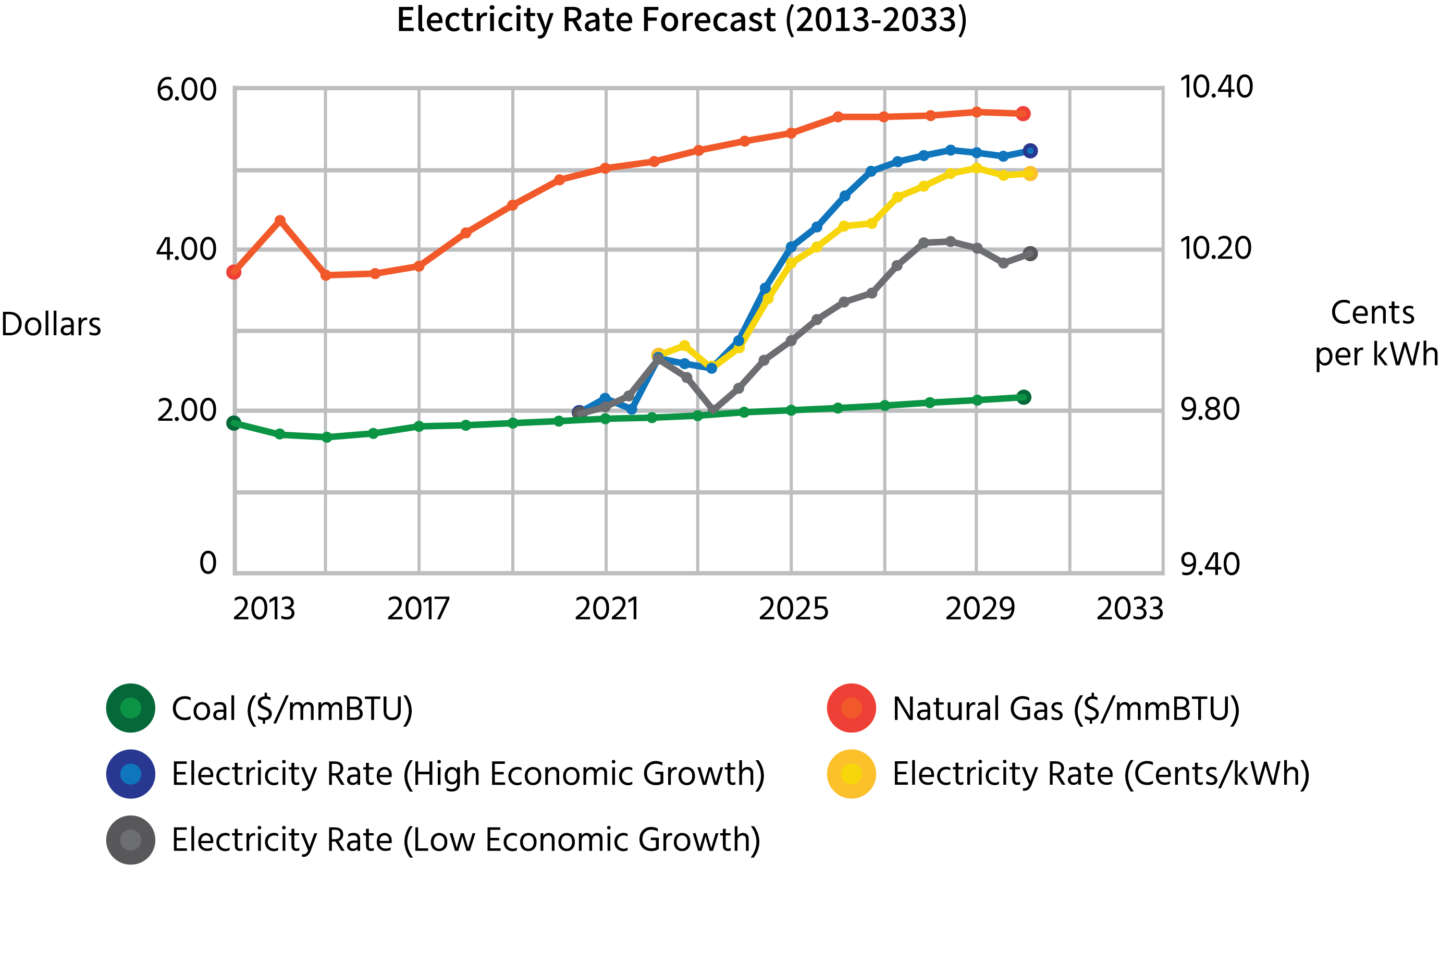 Electric Rate Forecast